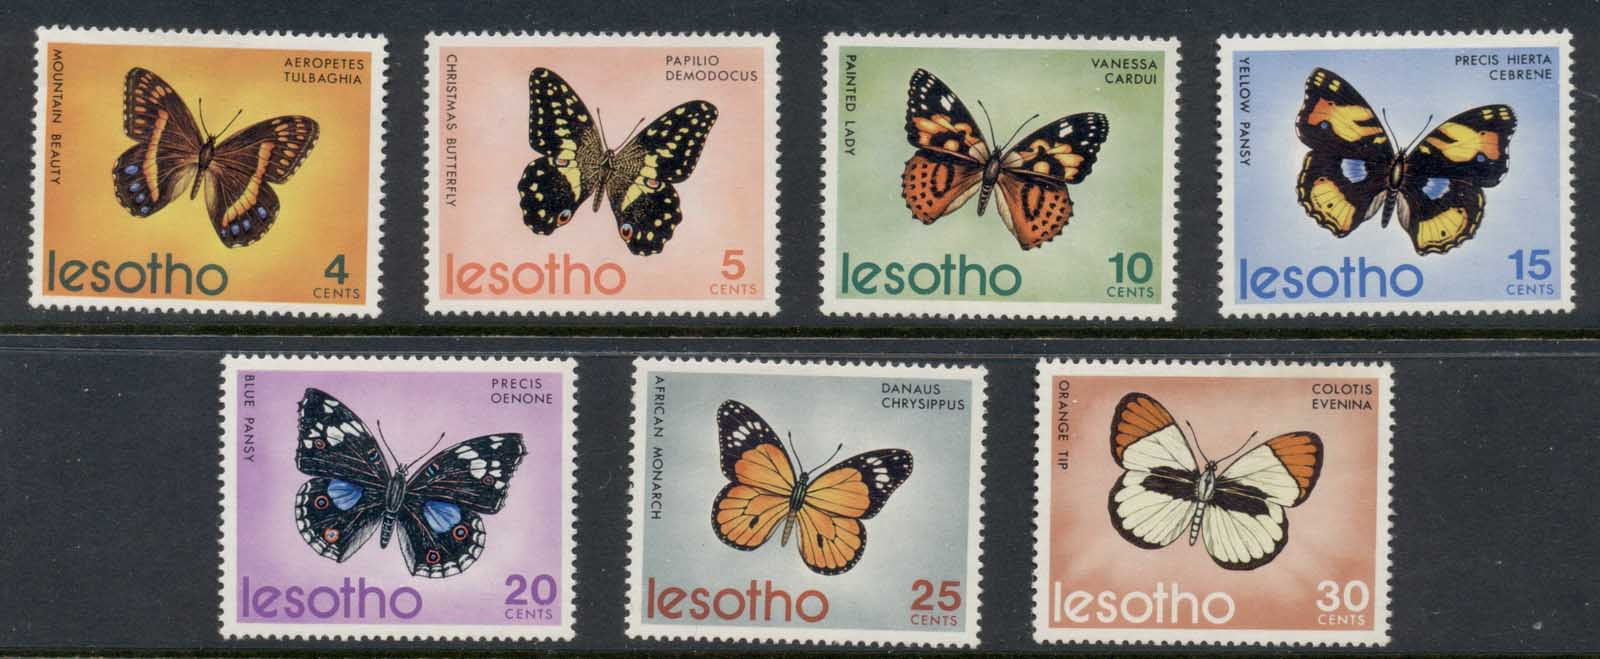 Lesotho 1973 Insects, Butterflies of Lesotho MUH